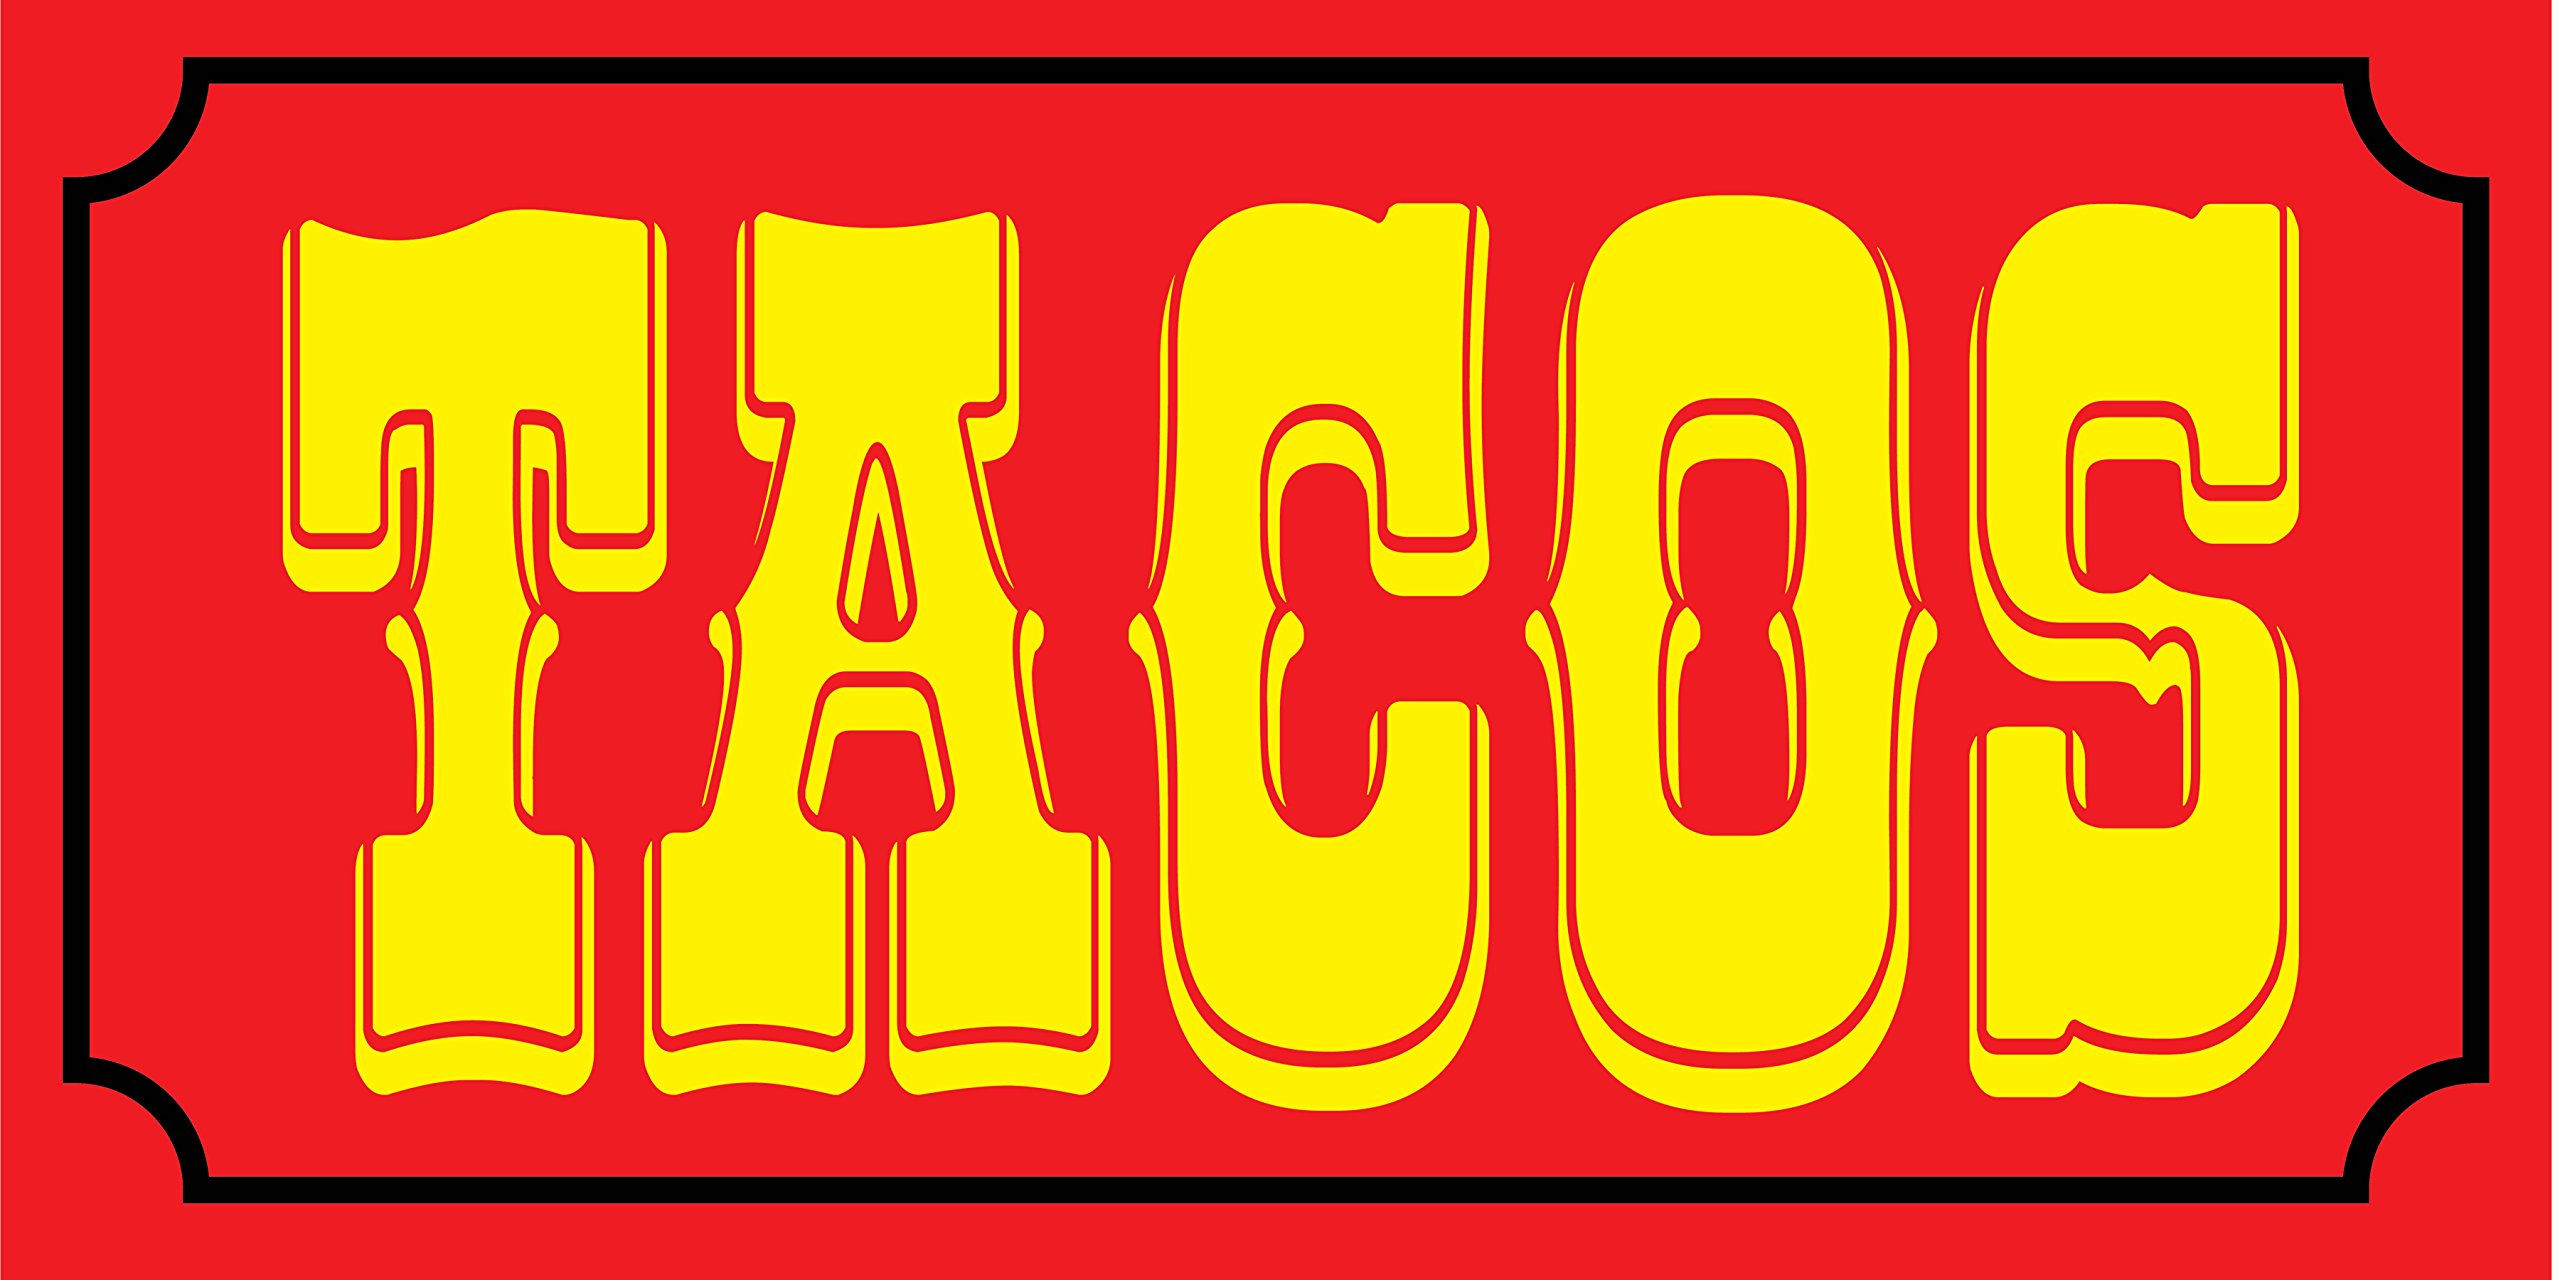 Pre-Printed Tacos Banner - Solid - Red (10' x 5')